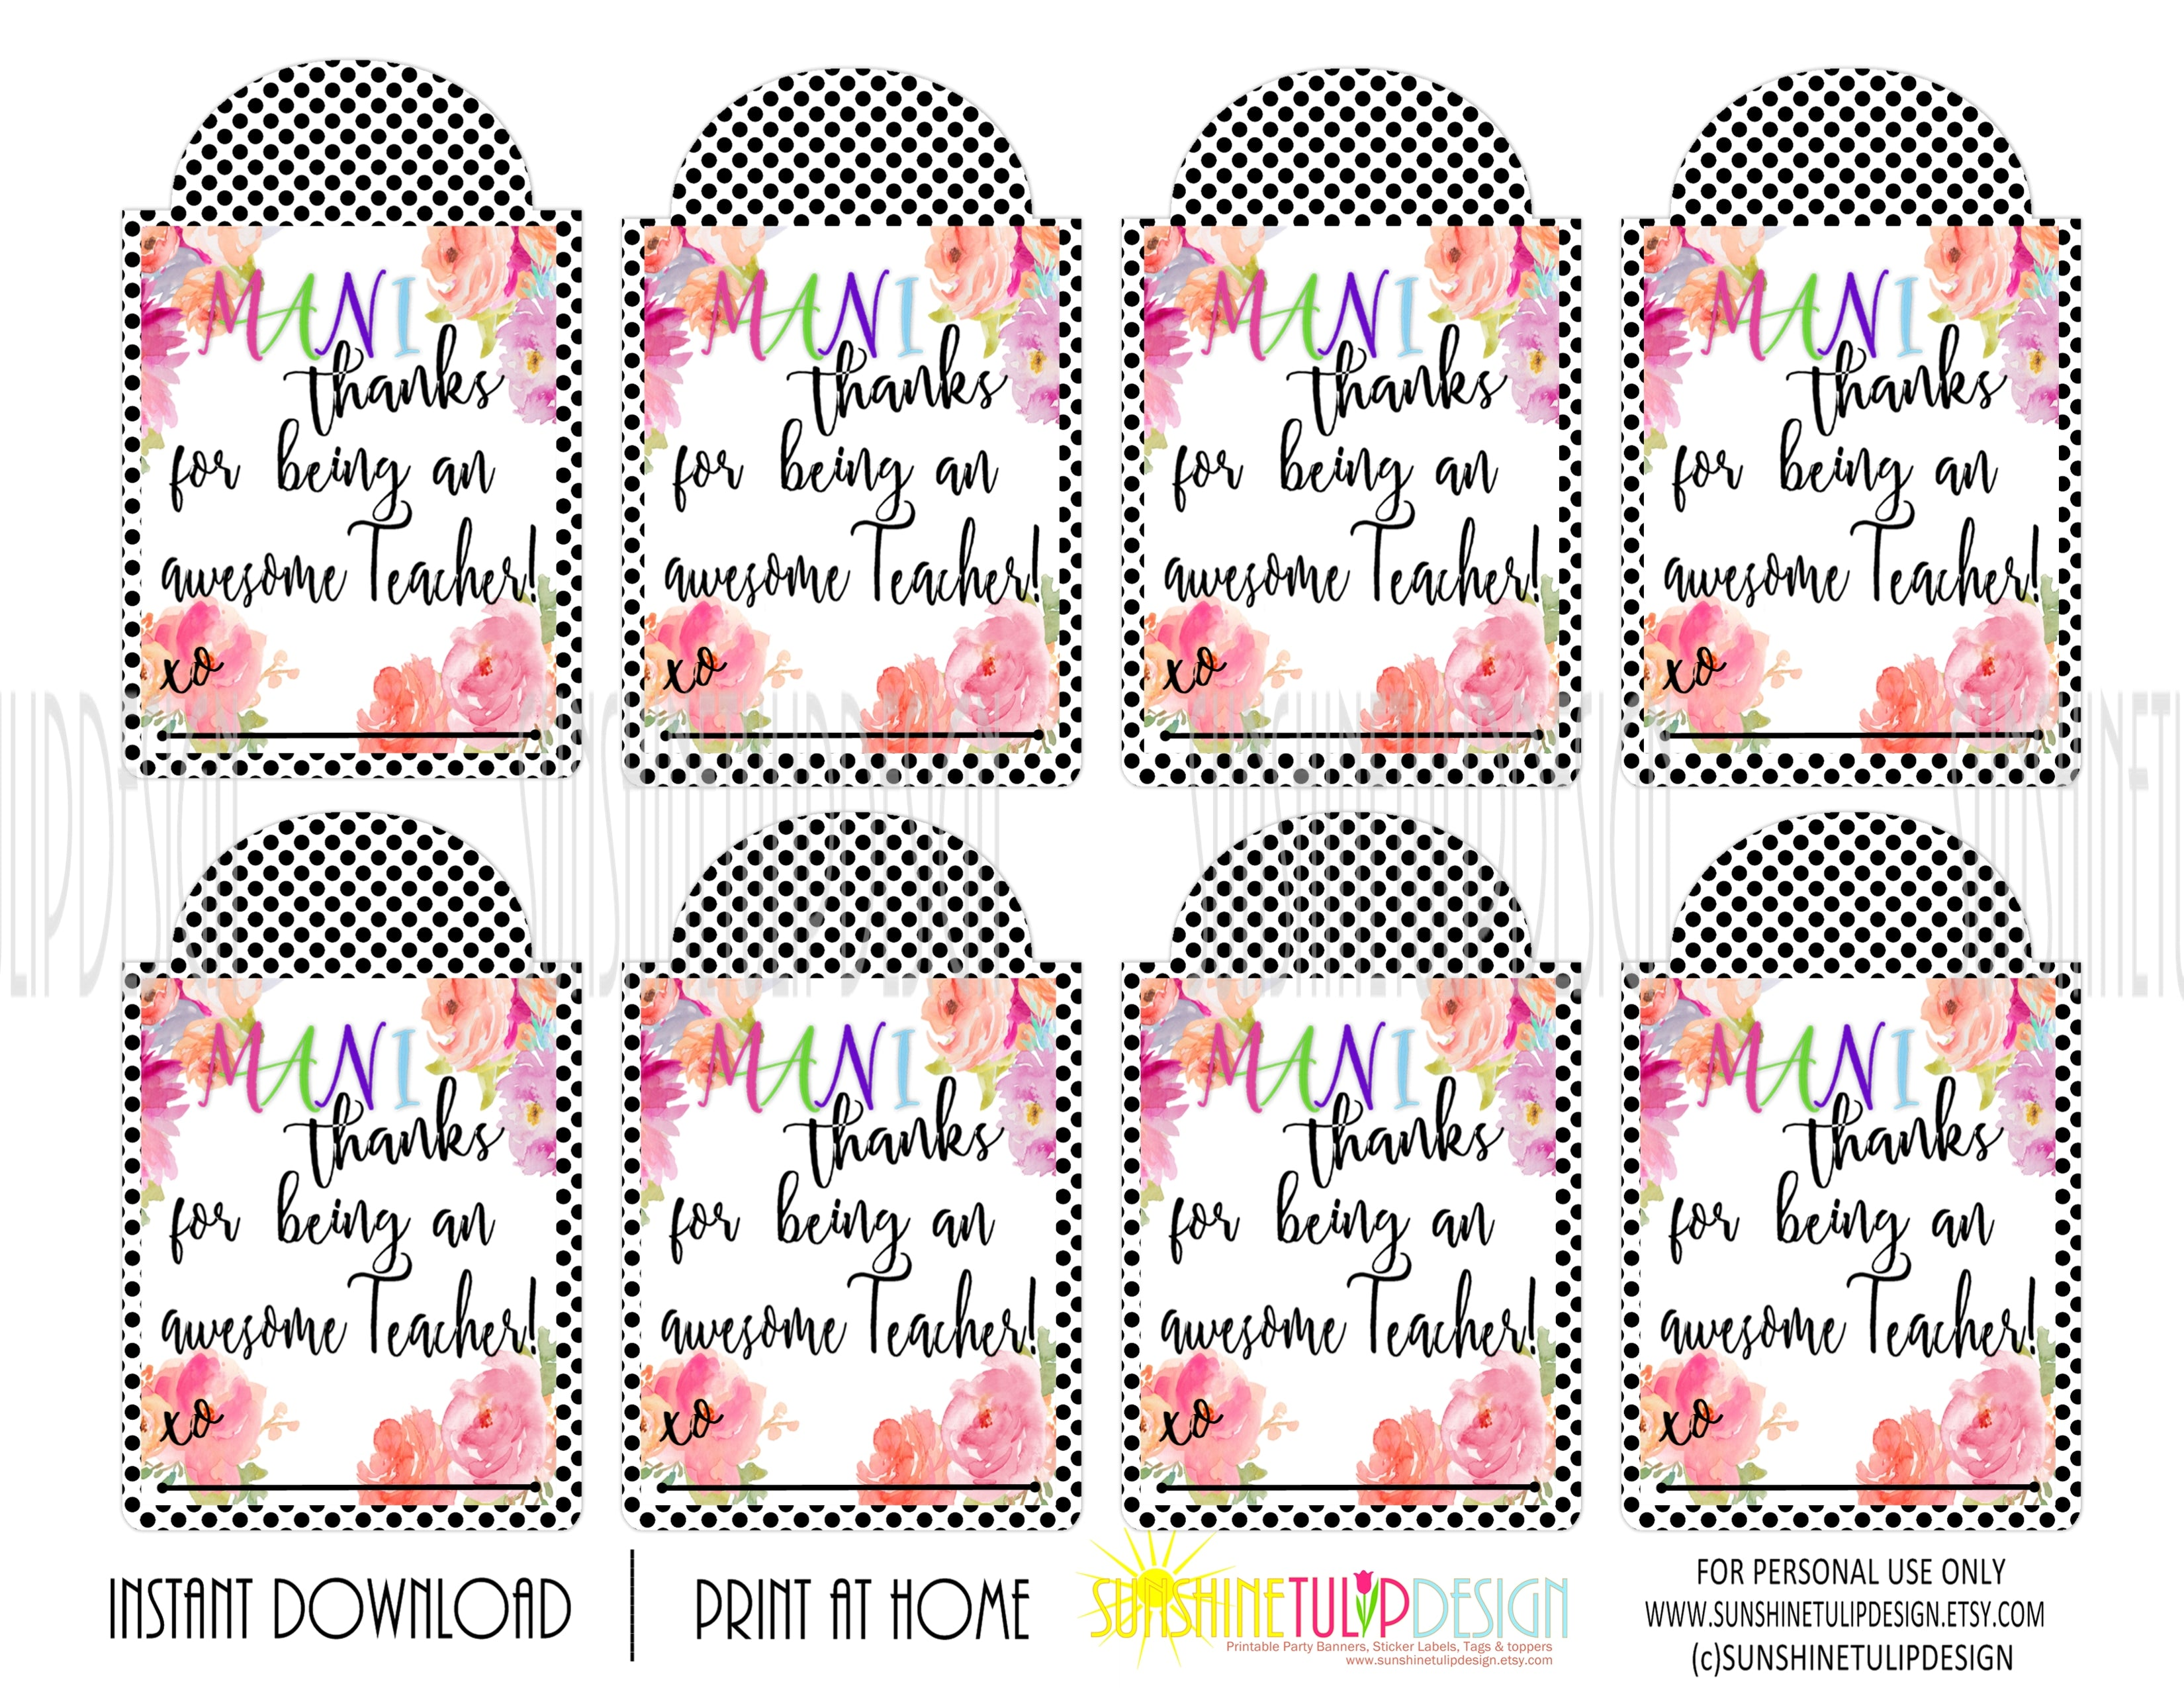 picture relating to Teacher Appreciation Tags Printable referred to as Printable Instructor Appreciation Mani Because of Present Tags, Nail Polish Appreciation Reward Tags as a result of SUNSHINETULIPDESIGN